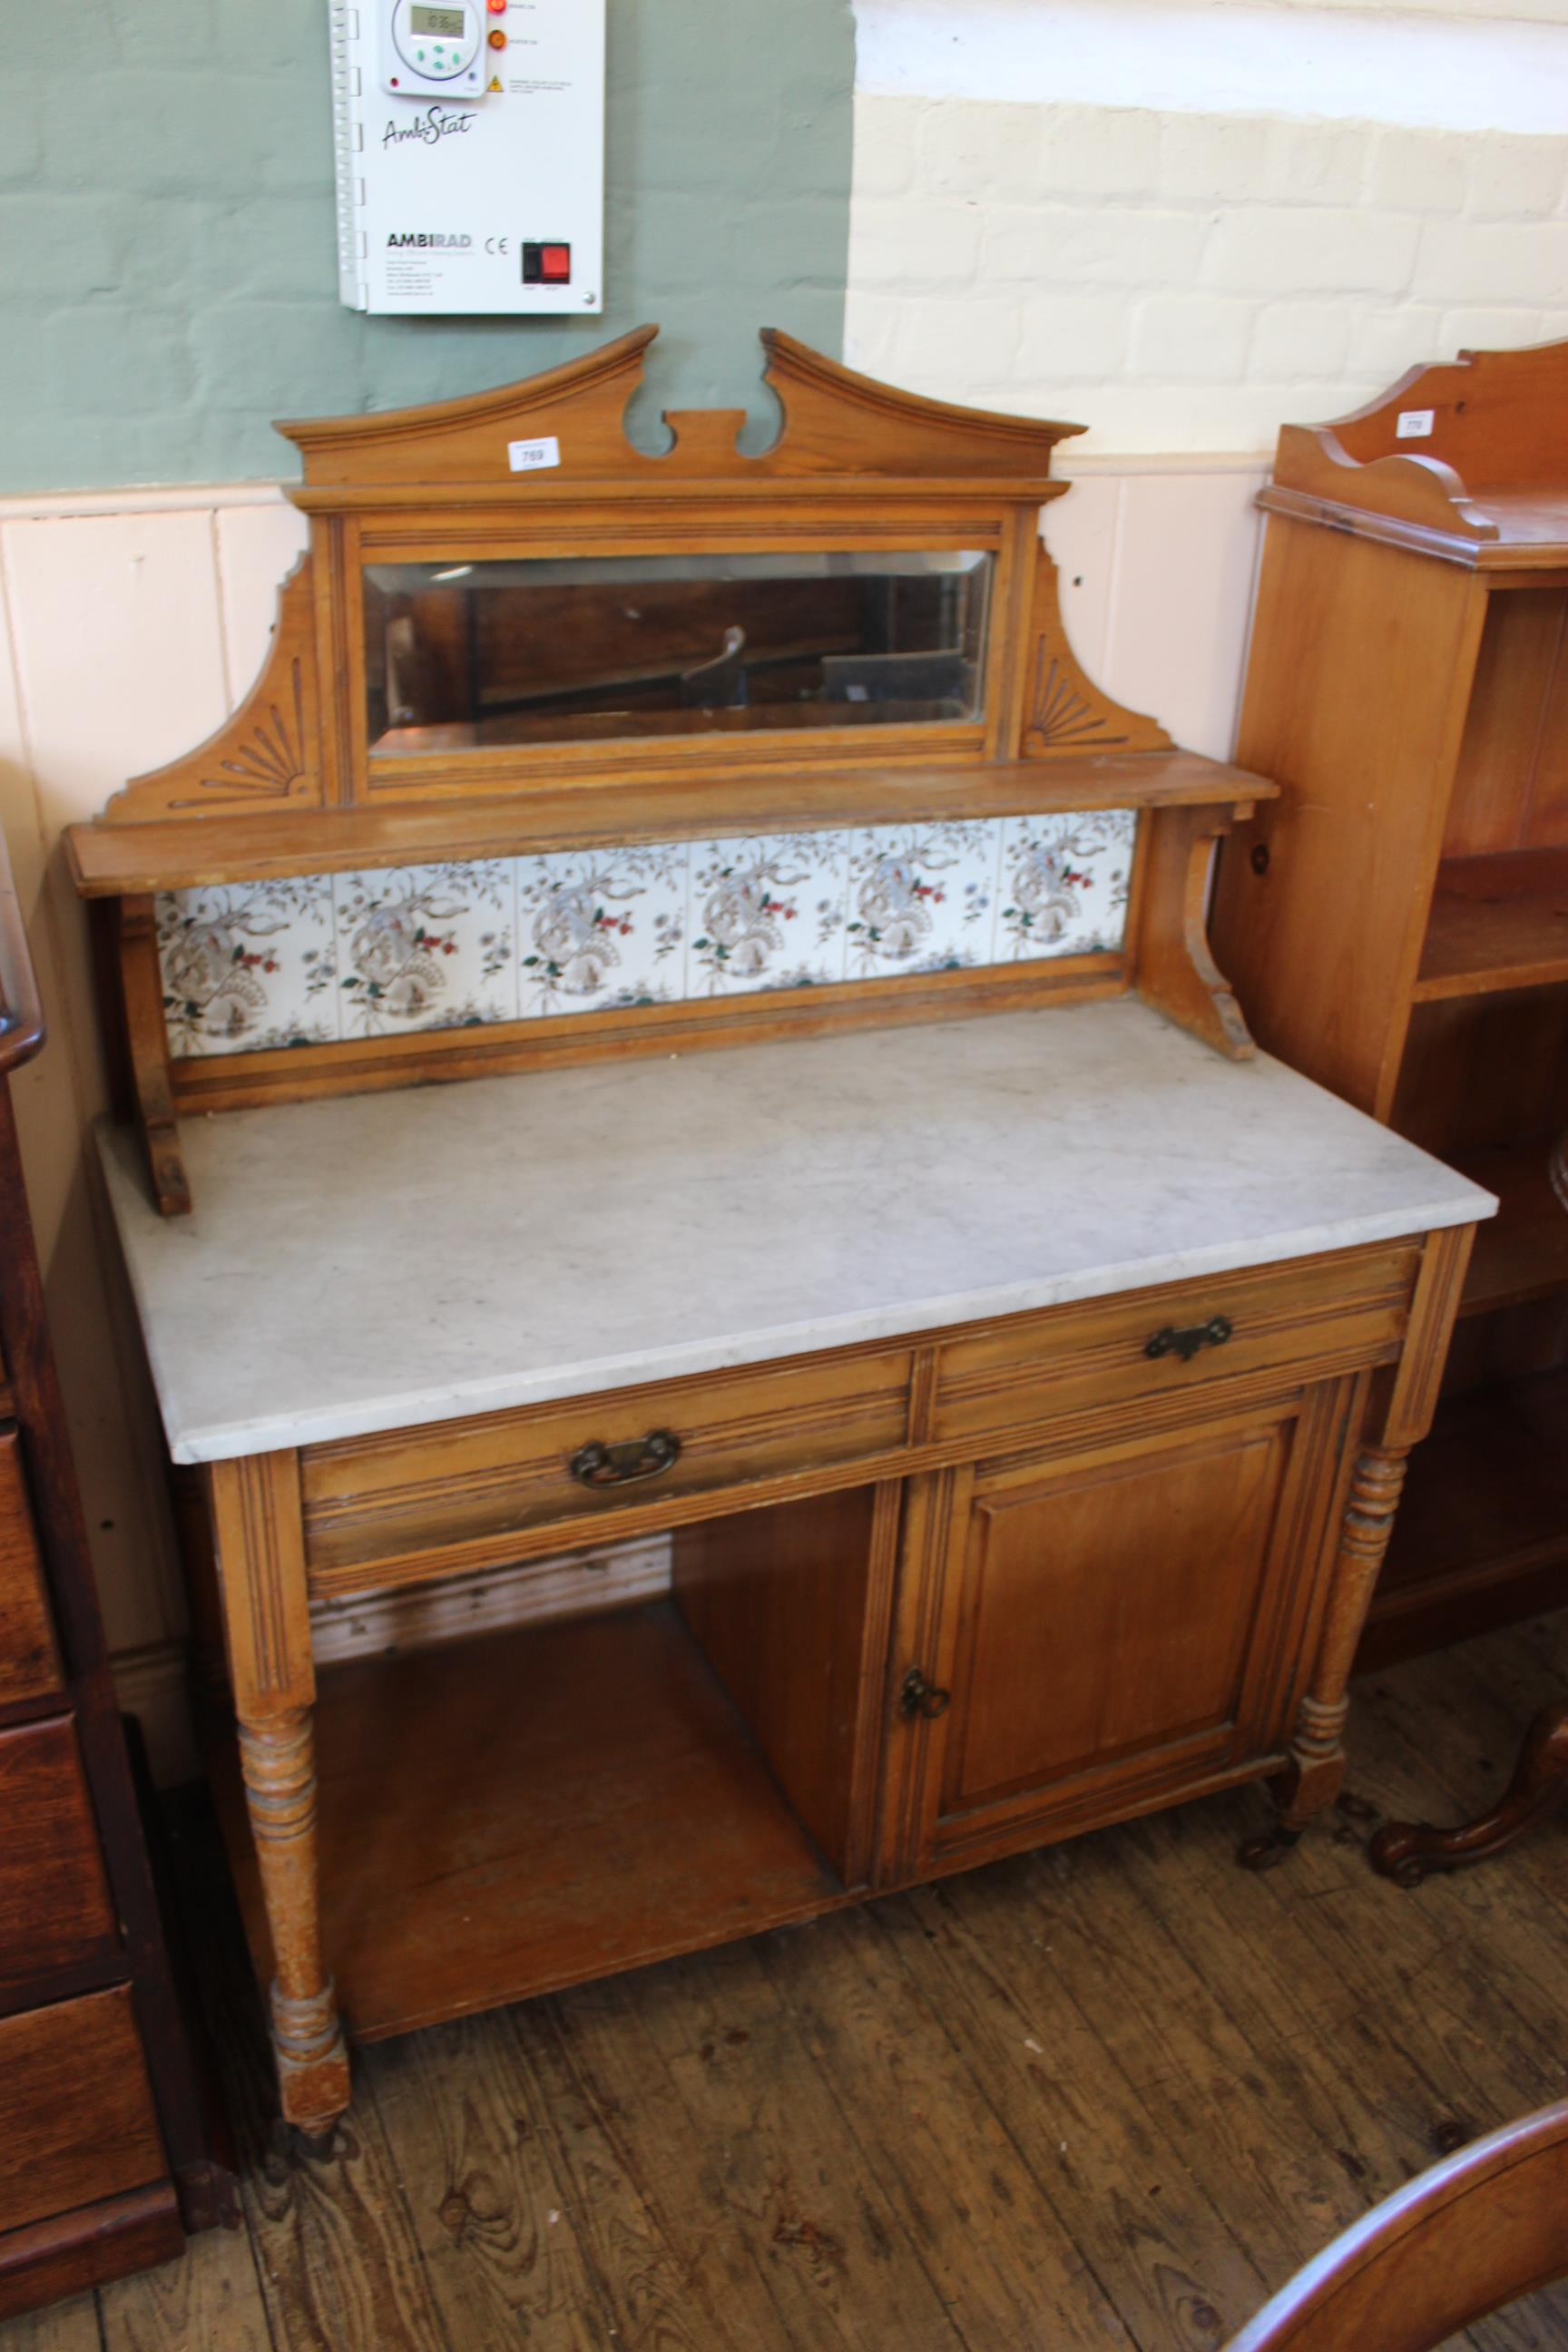 A late Victorian satin birch marble top washstand with tile back